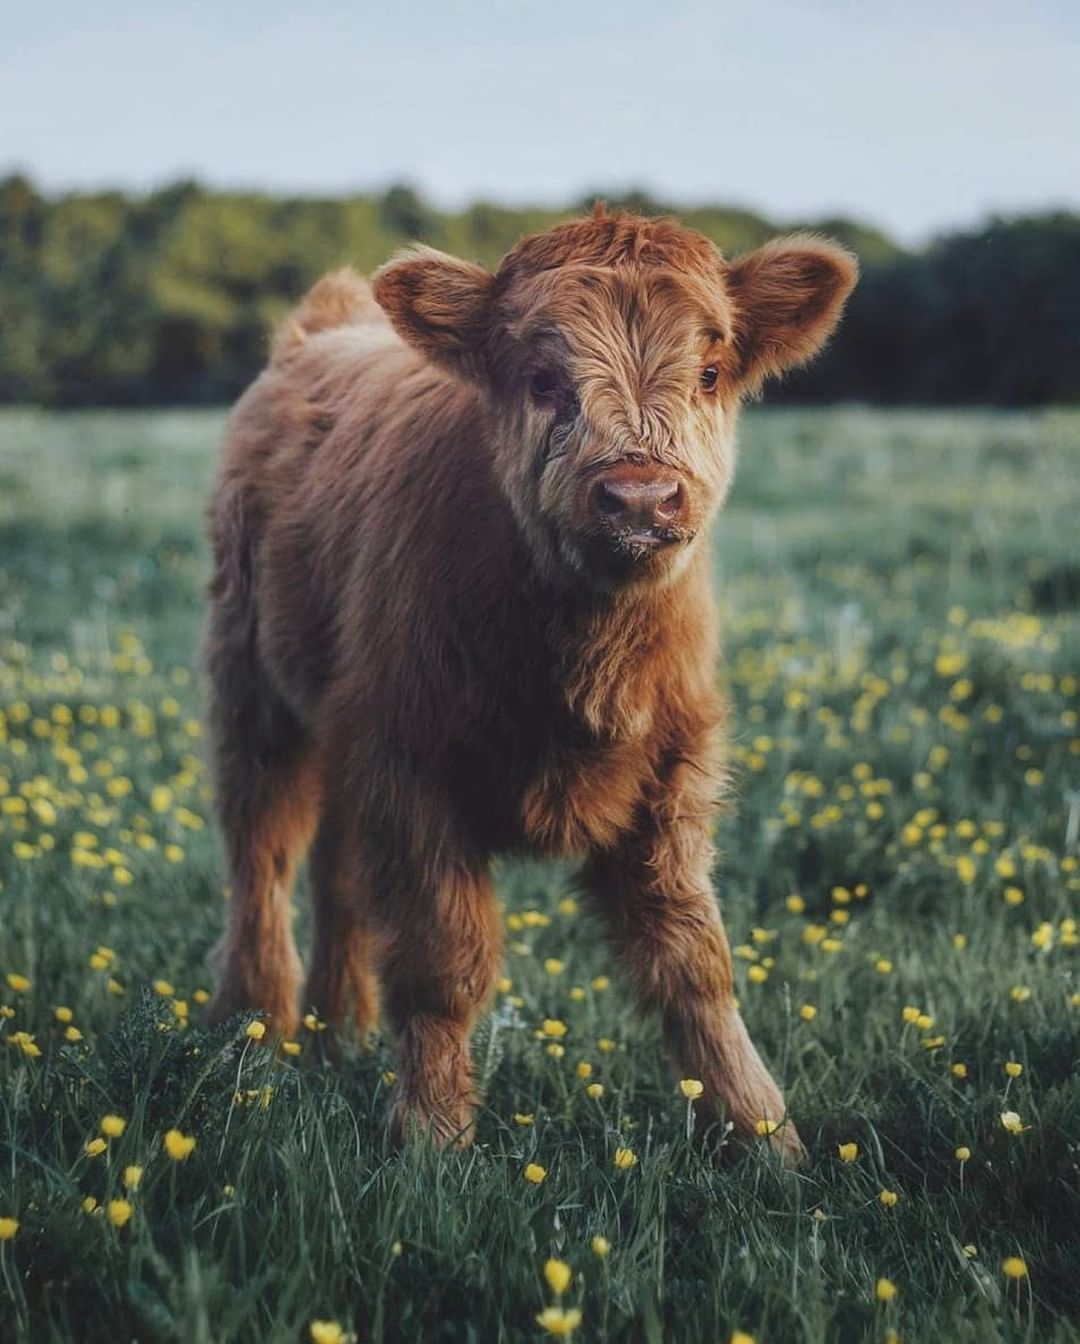 34 2k Likes 519 Comments Country Living Countrylivingmag On Instagram Cows Are Just Big Puppies And You Can Cute Baby Cow Fluffy Cows Baby Farm Animals